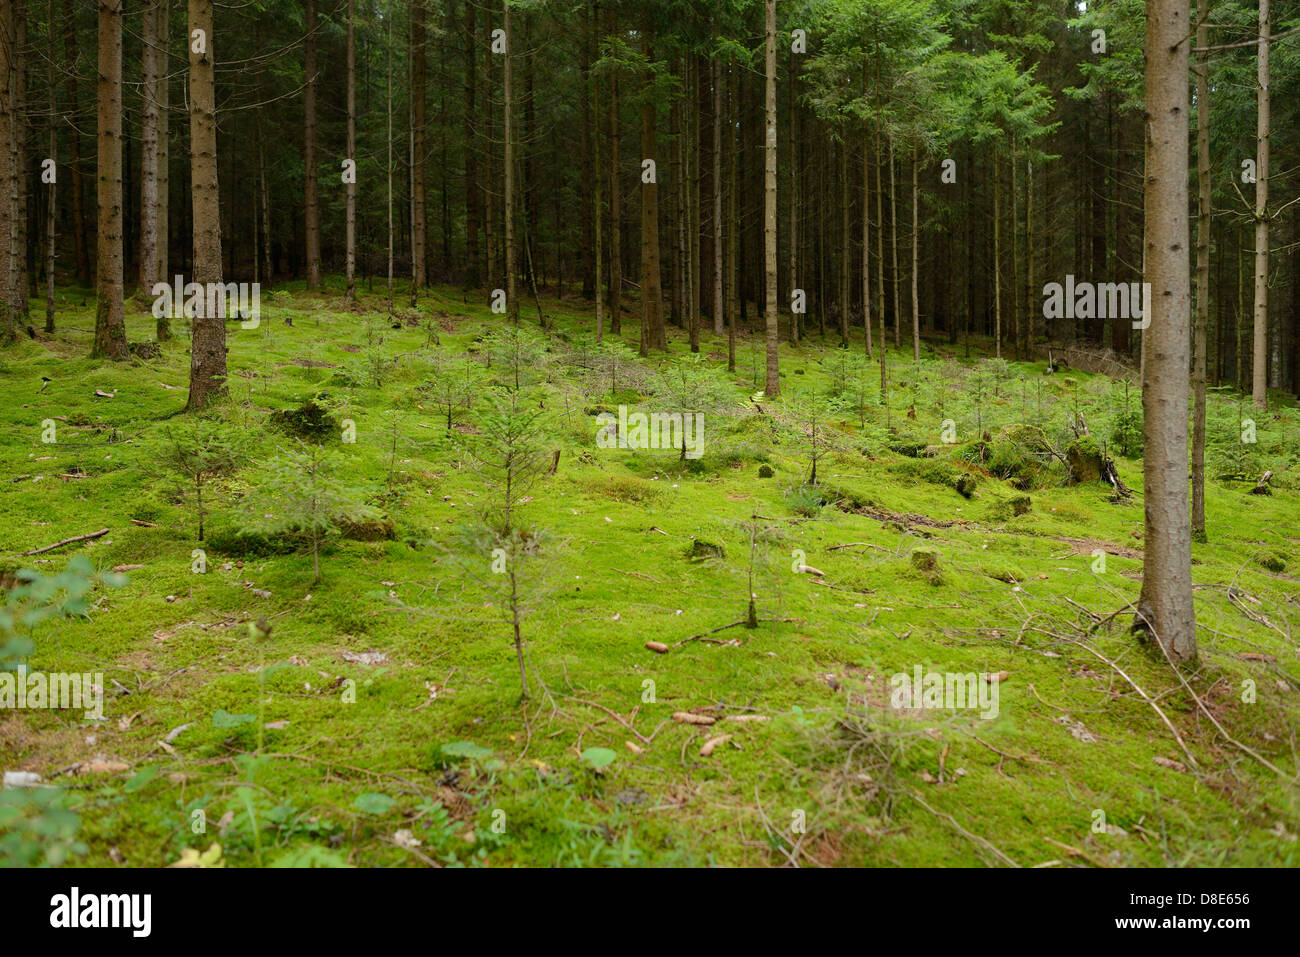 Conifer forest, Upper Palatinate, Bavaria, Germany - Stock Image